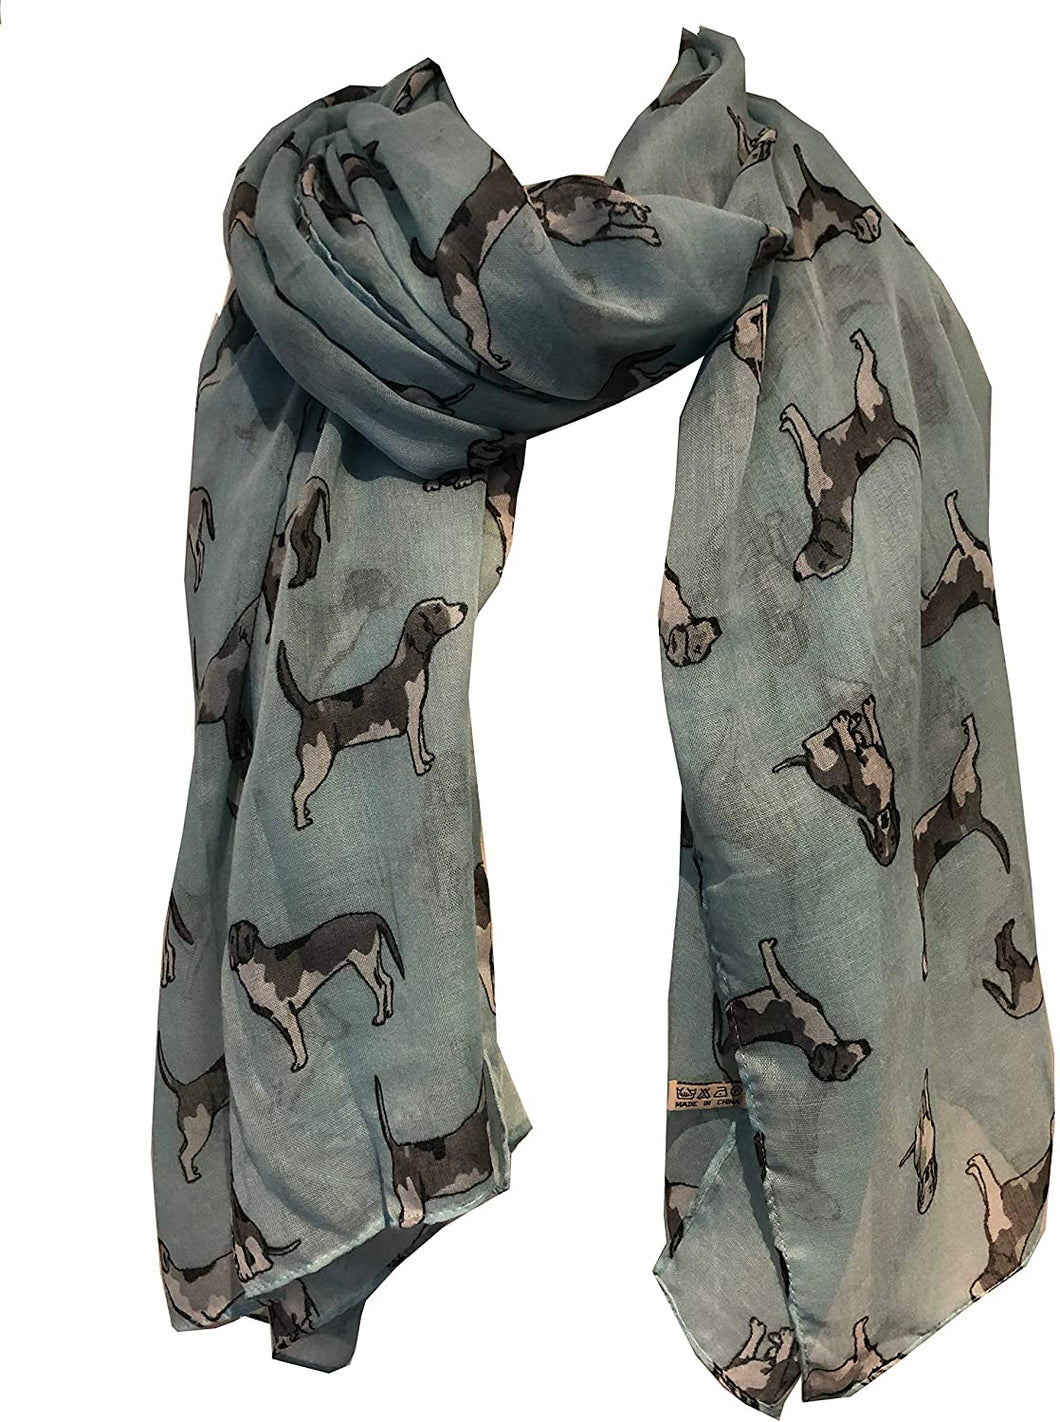 Pamper Yourself Now Light Green with Grey Beagles Dogs Scarf Fashion Long Soft wrap/Sarong. Great Present/Gift for Dog Lovers.